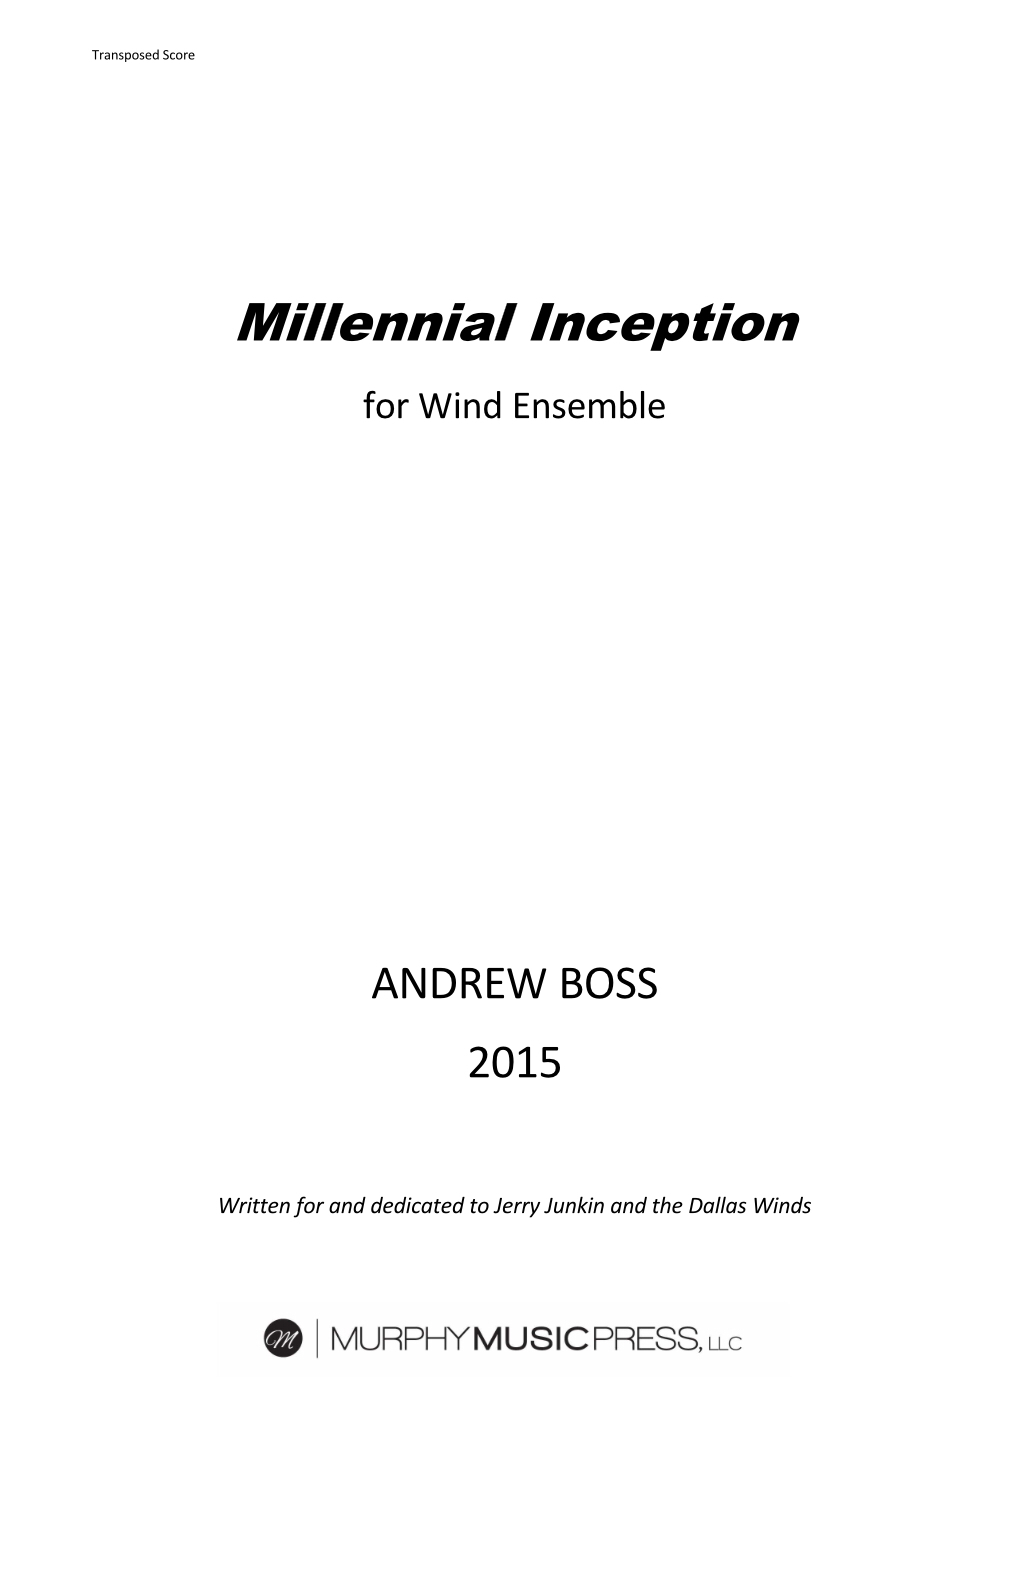 Millennial Inception (PDF Version) by Andrew Boss